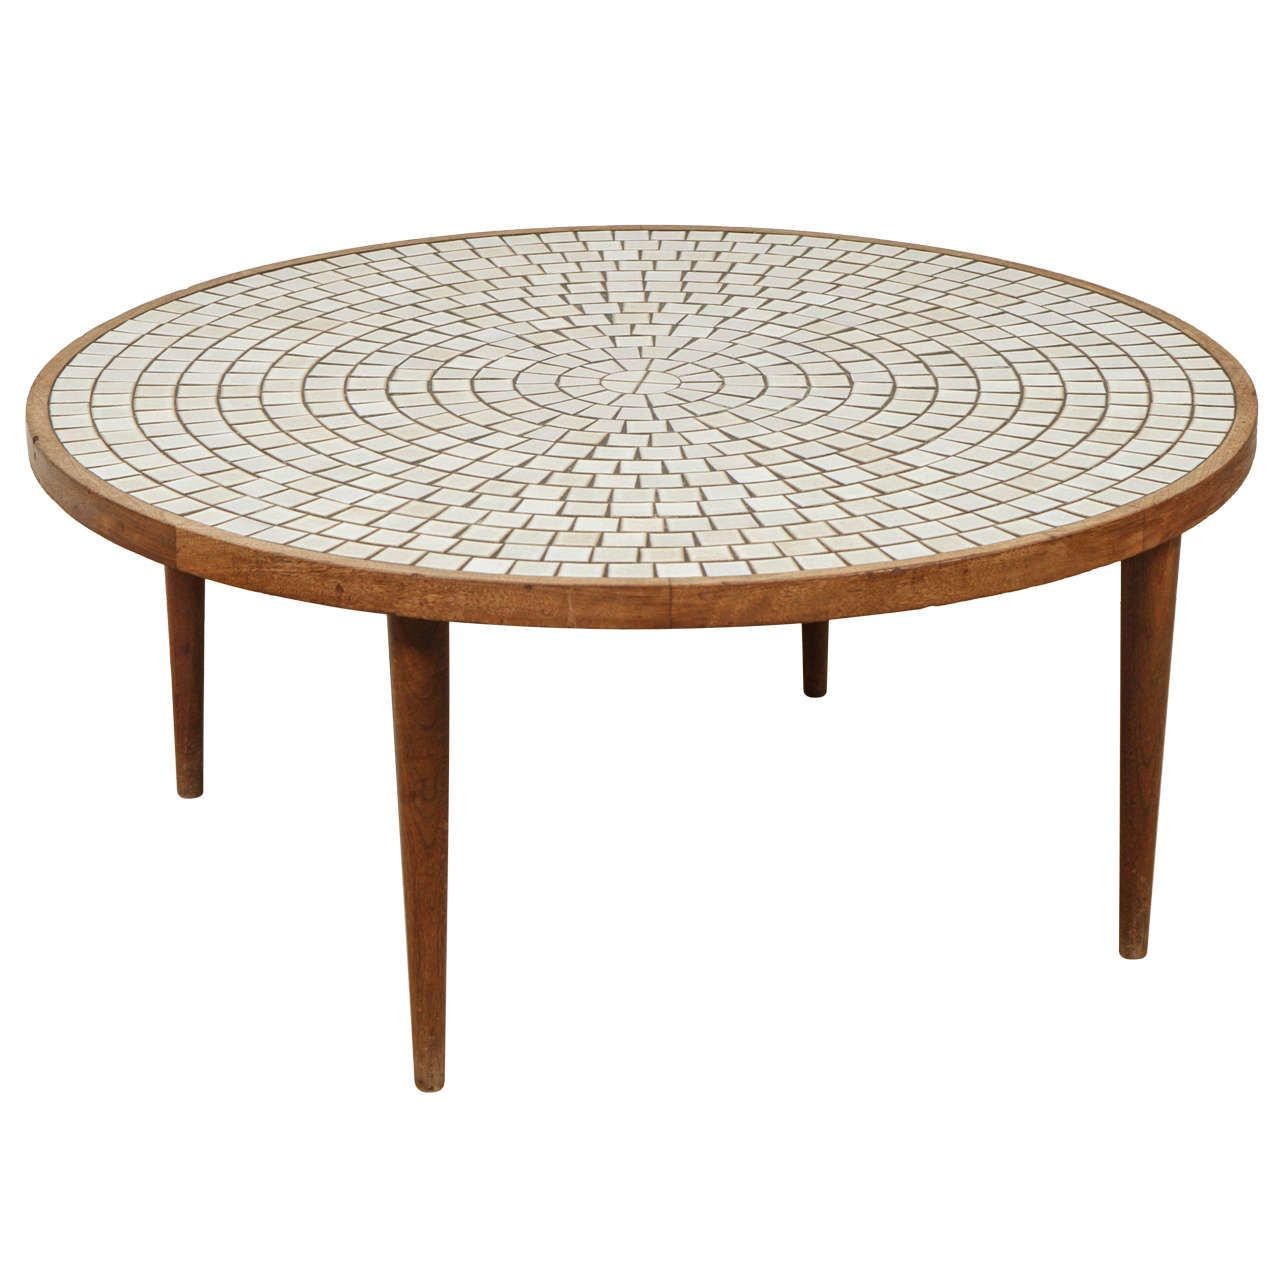 Round Walnut Table with Studio Tiles by Gordon Martz for Marshall Studios   From a unique collection of antique and modern coffee and cocktail tables at https://www.1stdibs.com/furniture/tables/coffee-tables-cocktail-tables/